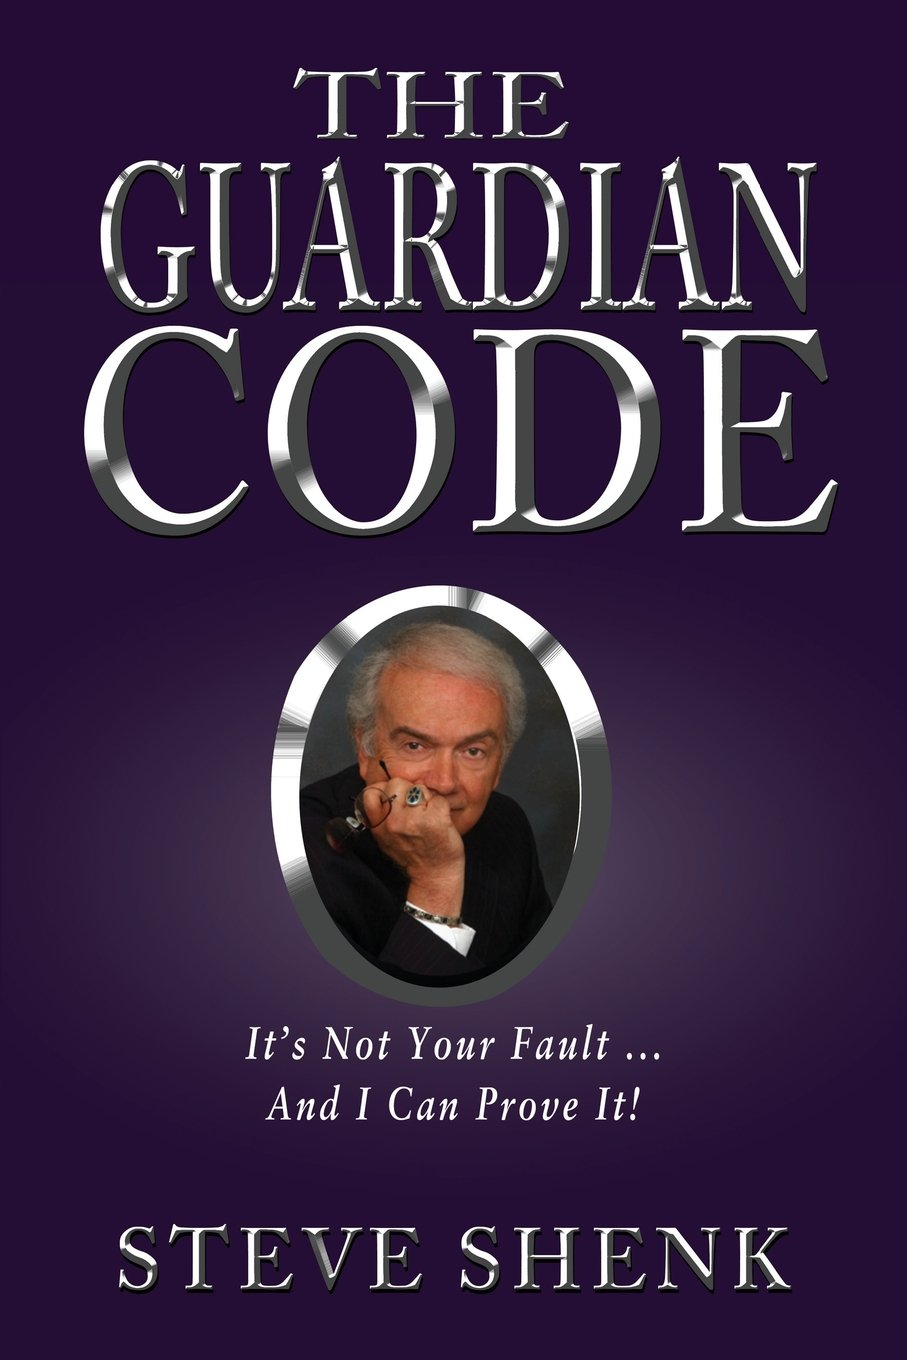 The Guardian Code: It's Not Your Fault [And I Can Prove It!] pdf epub